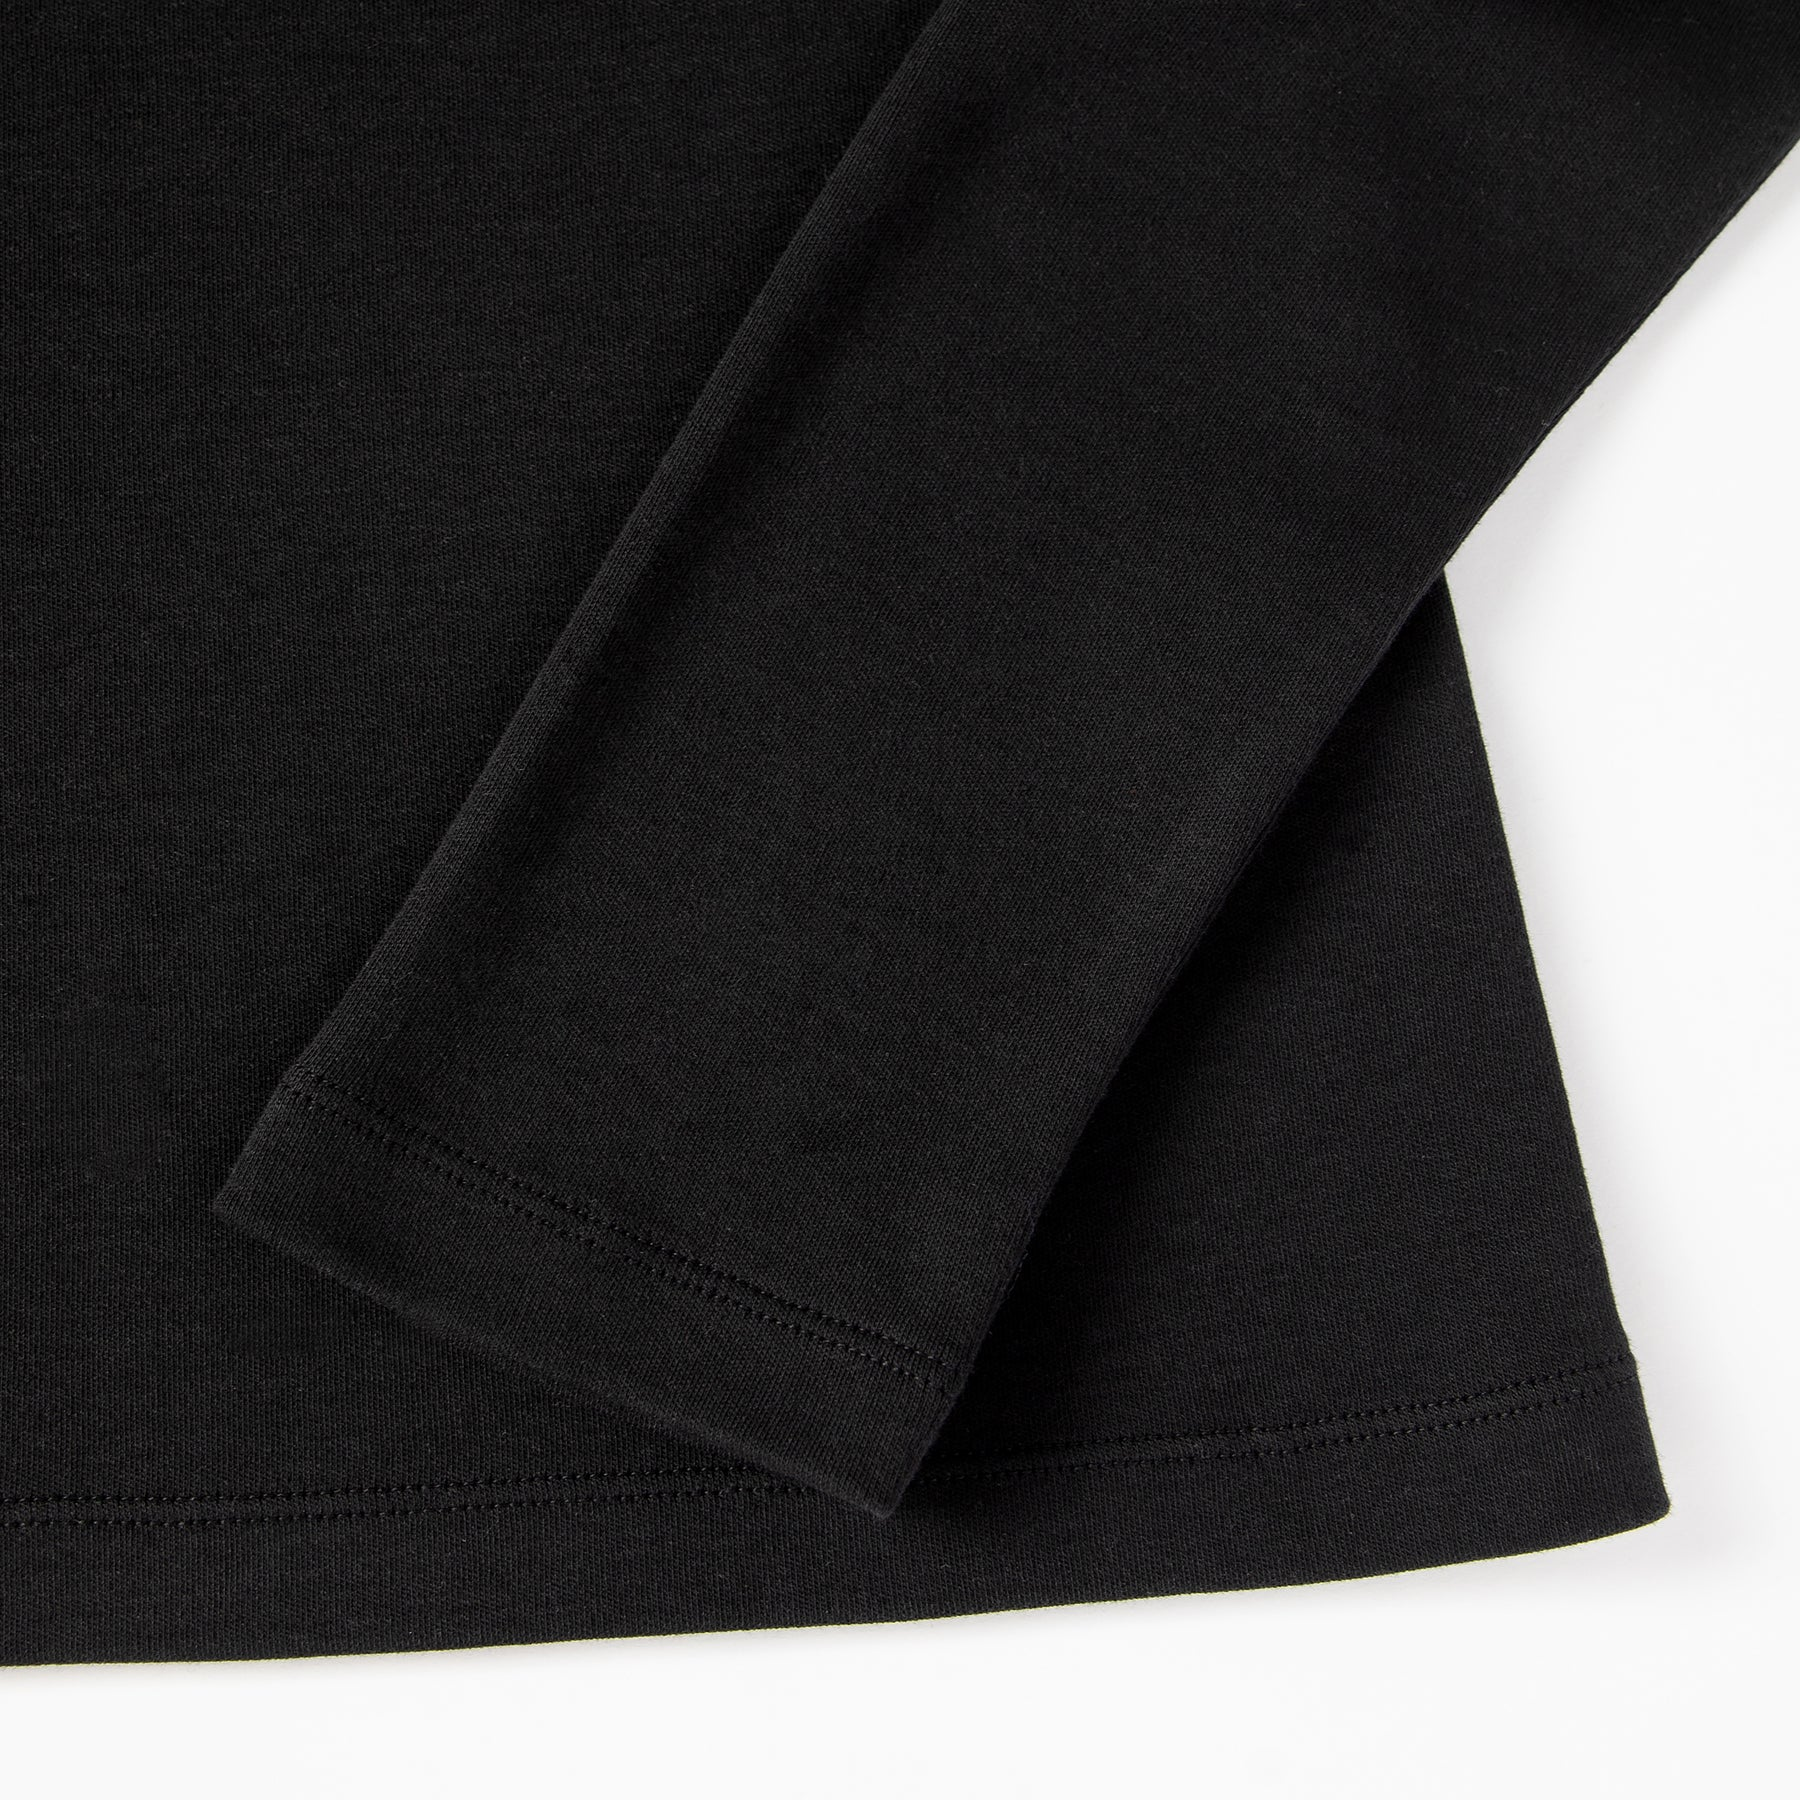 Black eco turtleneck. GOTS certified textile. 100% natural. Sustainable fashion.